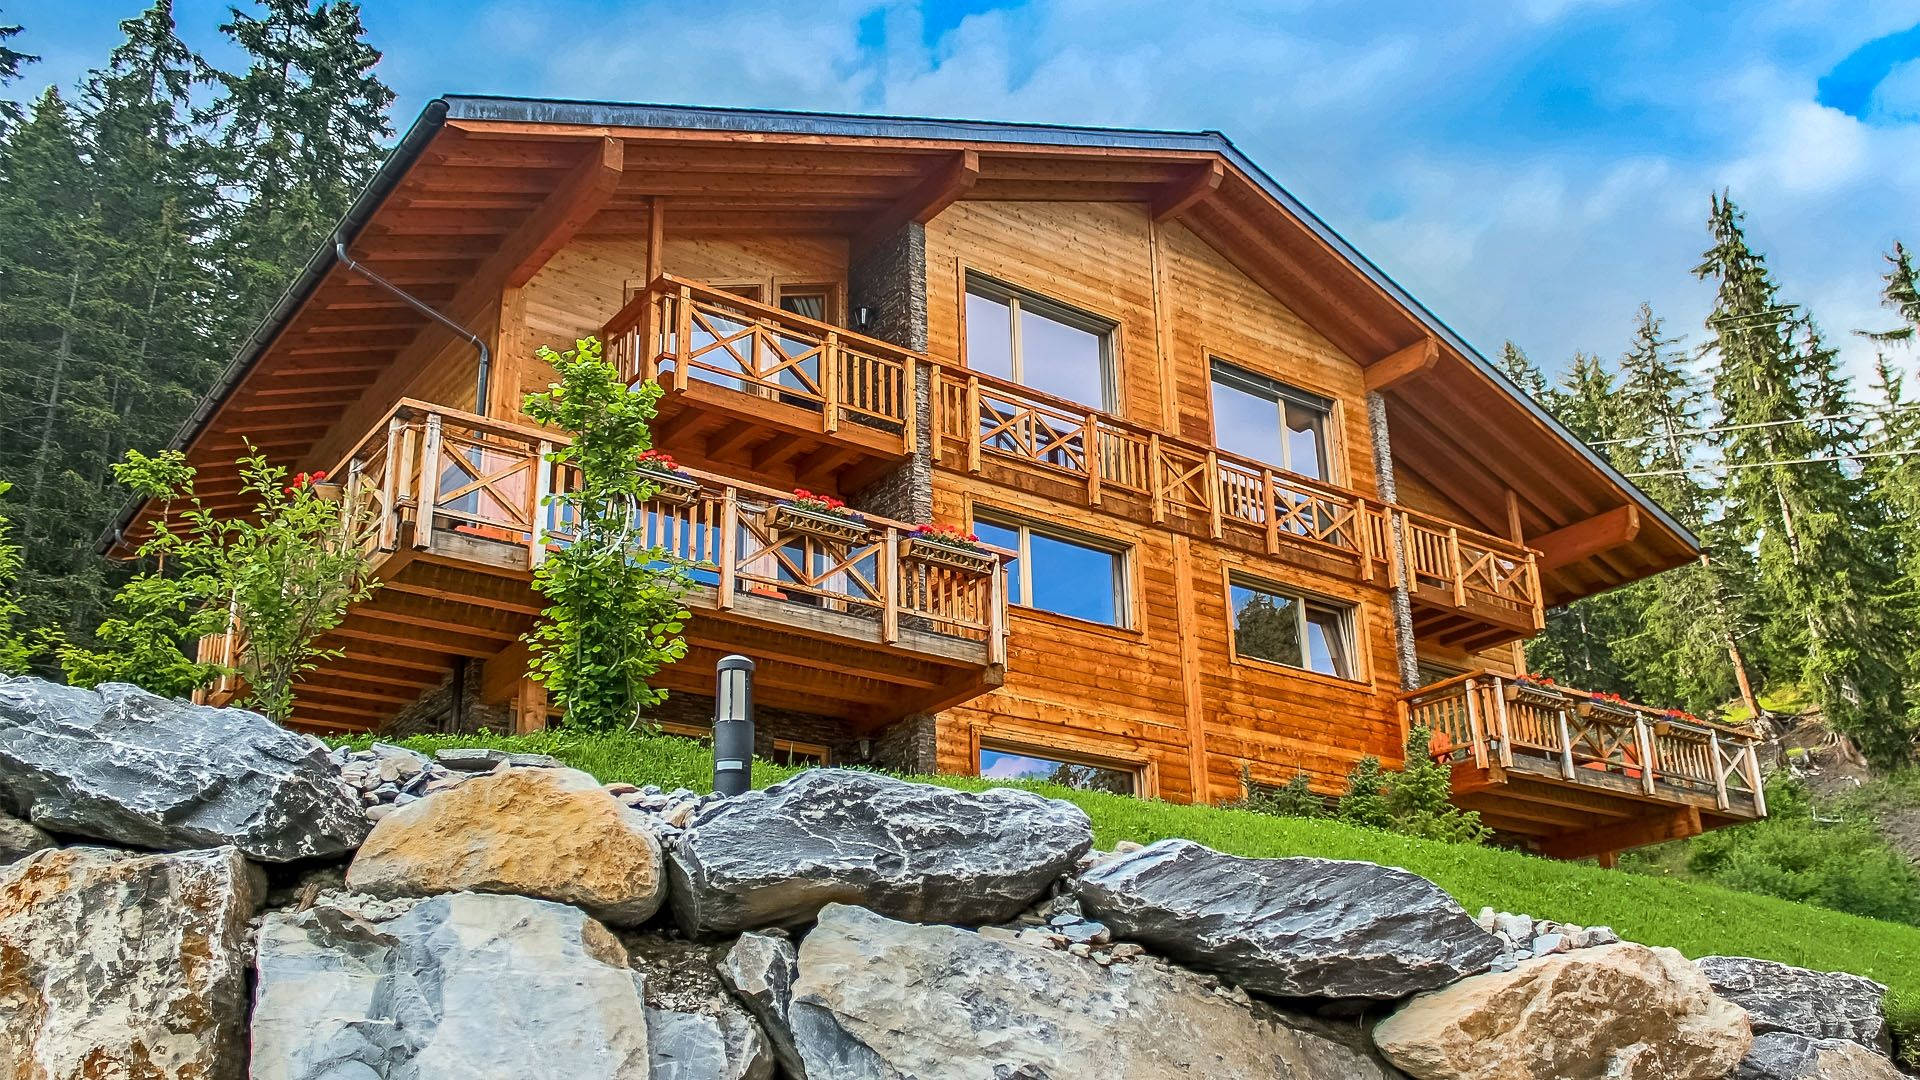 Ski-in ski-out apartment rental in Crans Montana with spa and jacuzzi